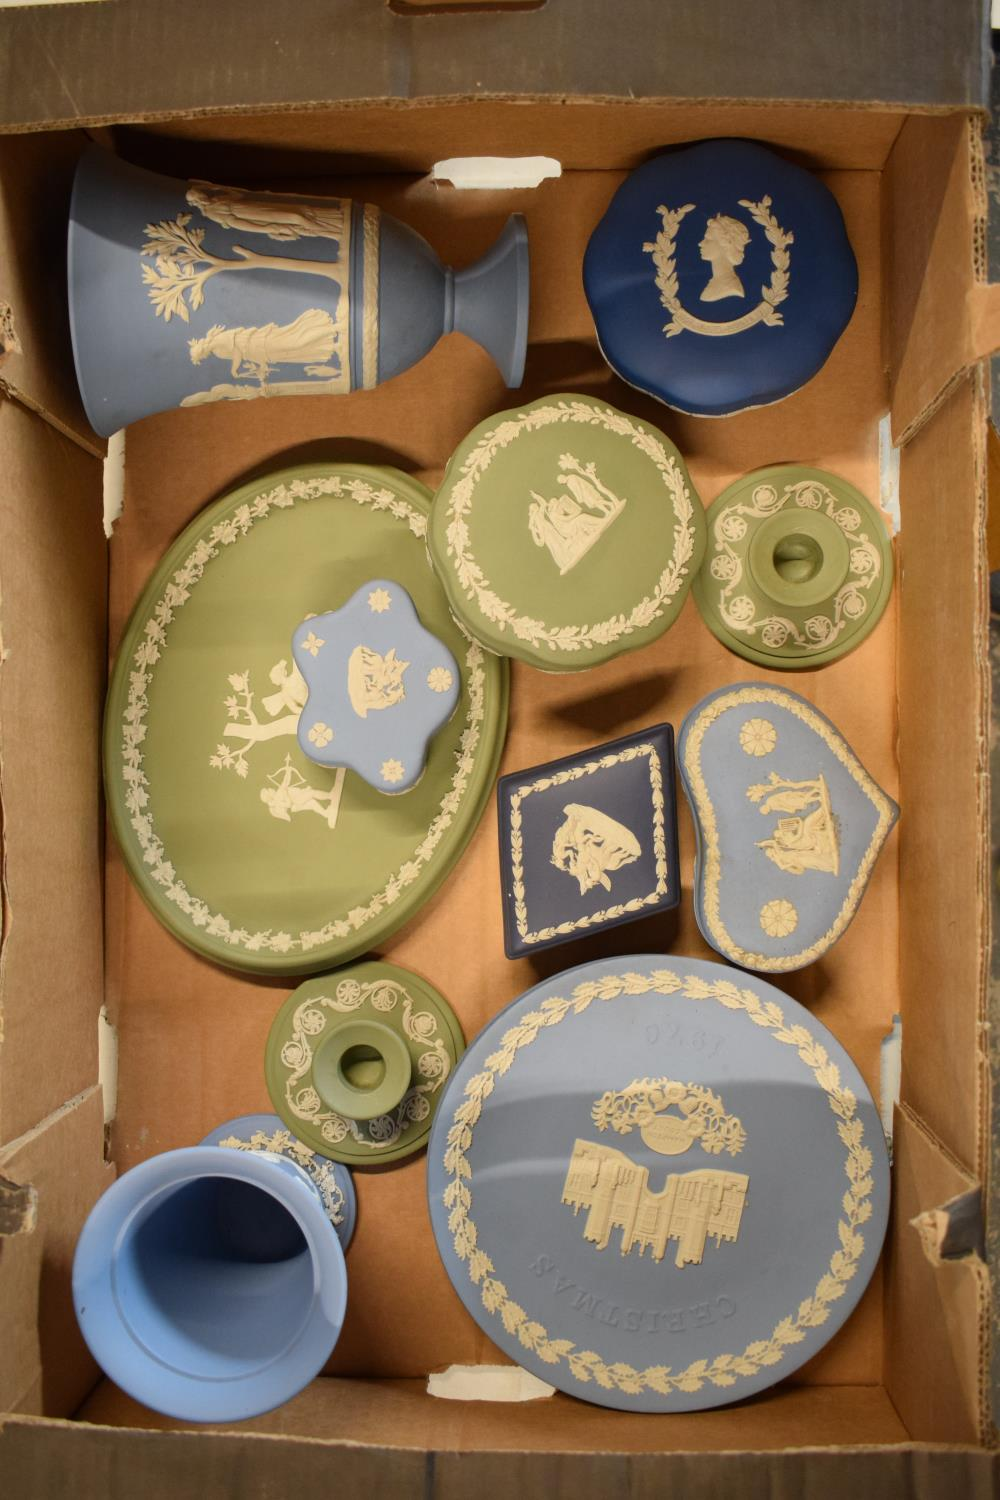 A collection of Wedgwood Jasperware to include vases, plates, trinkets etc in an array of colours to